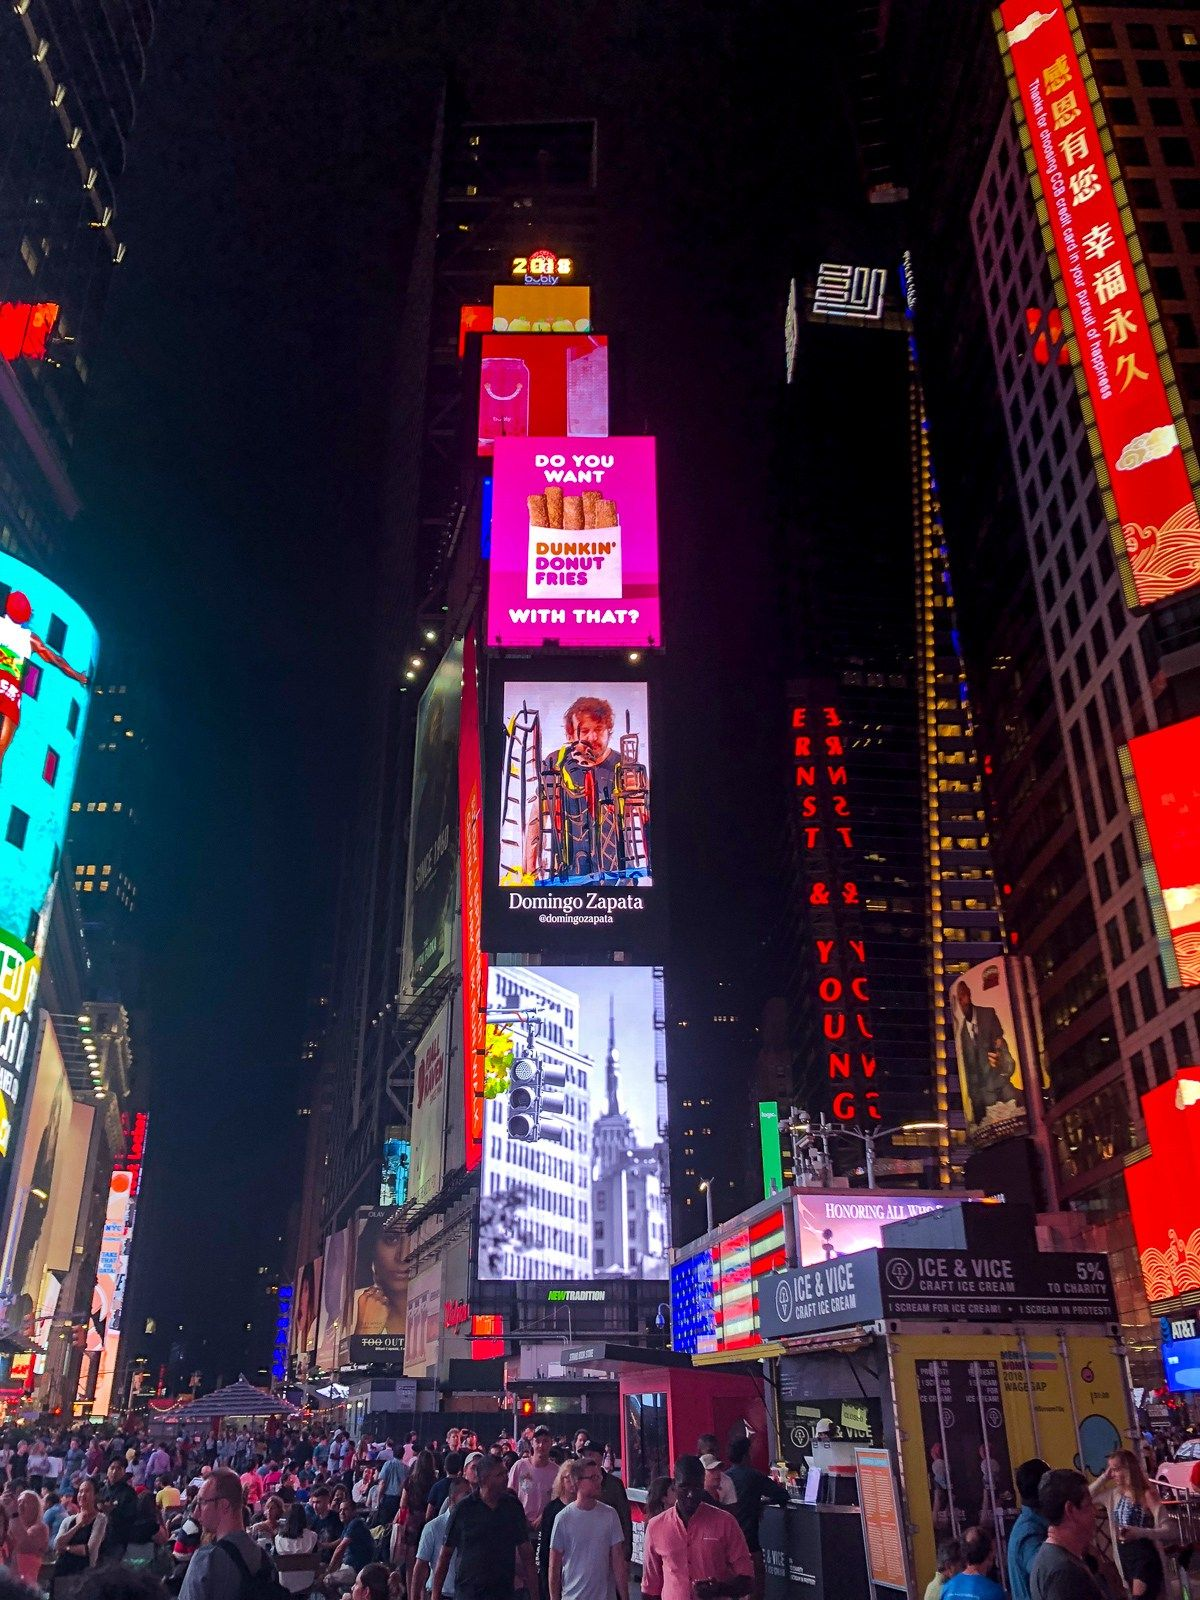 Times Square Nbc Studios Mean Girls On Broadway Things To Do In New York Nyc Broadway Travel Ideas Vacation Travel Travel Easy Travel Overseas Travel